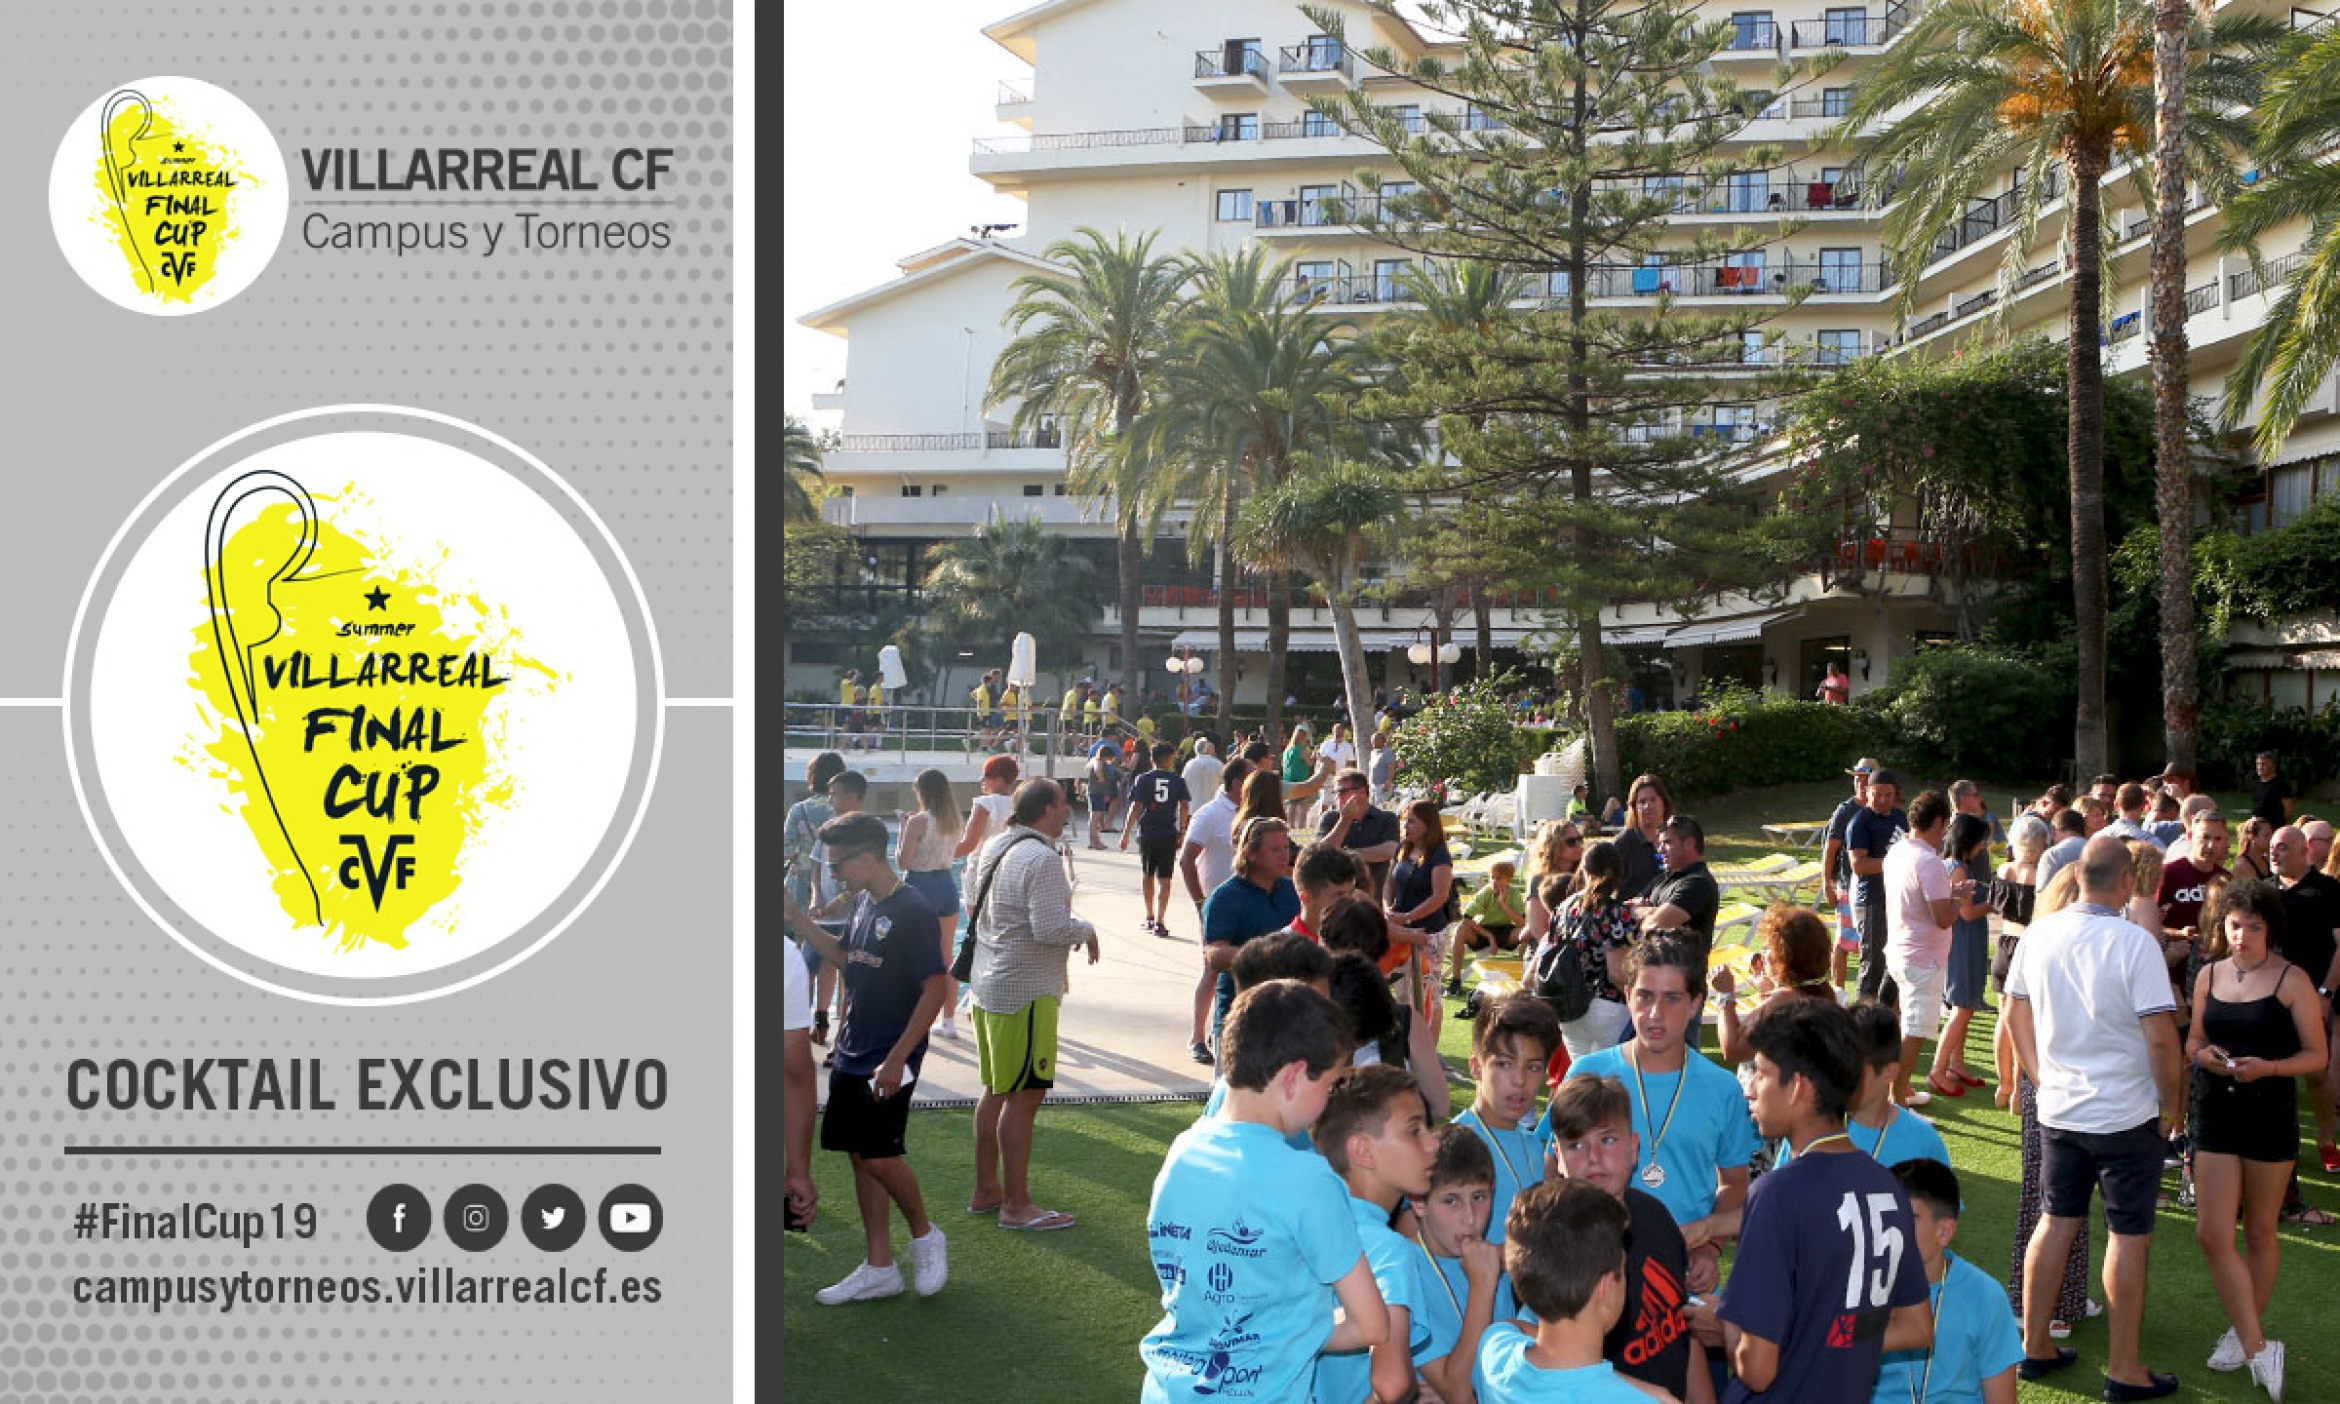 COCKTAIL EXCLUSIVO VILLARREAL FINAL CUP